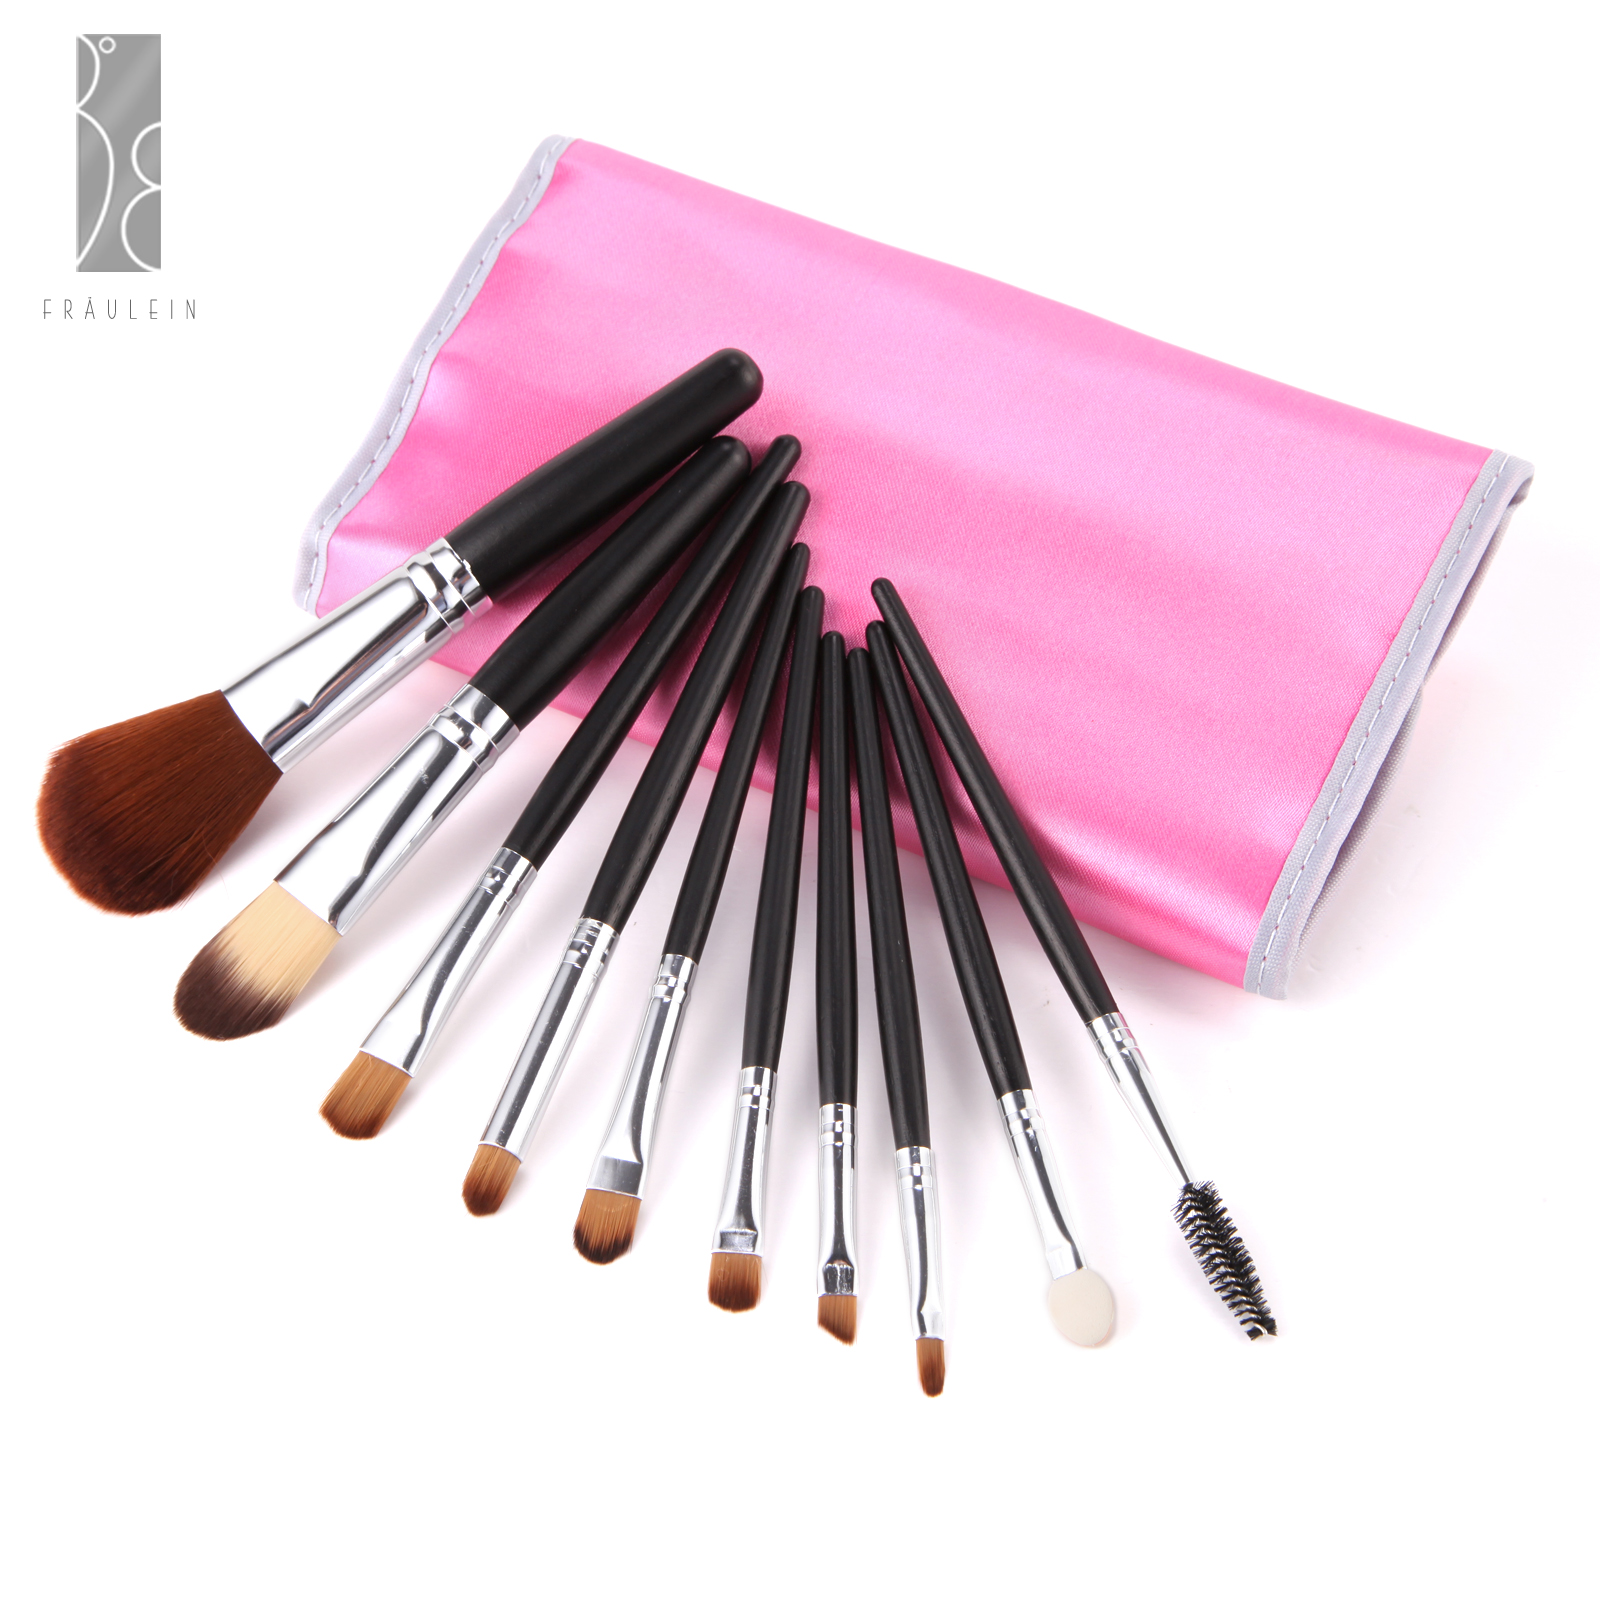 10tlg pinsel make up set brush b rste schminkpinsel mit schminken tasche ebay. Black Bedroom Furniture Sets. Home Design Ideas